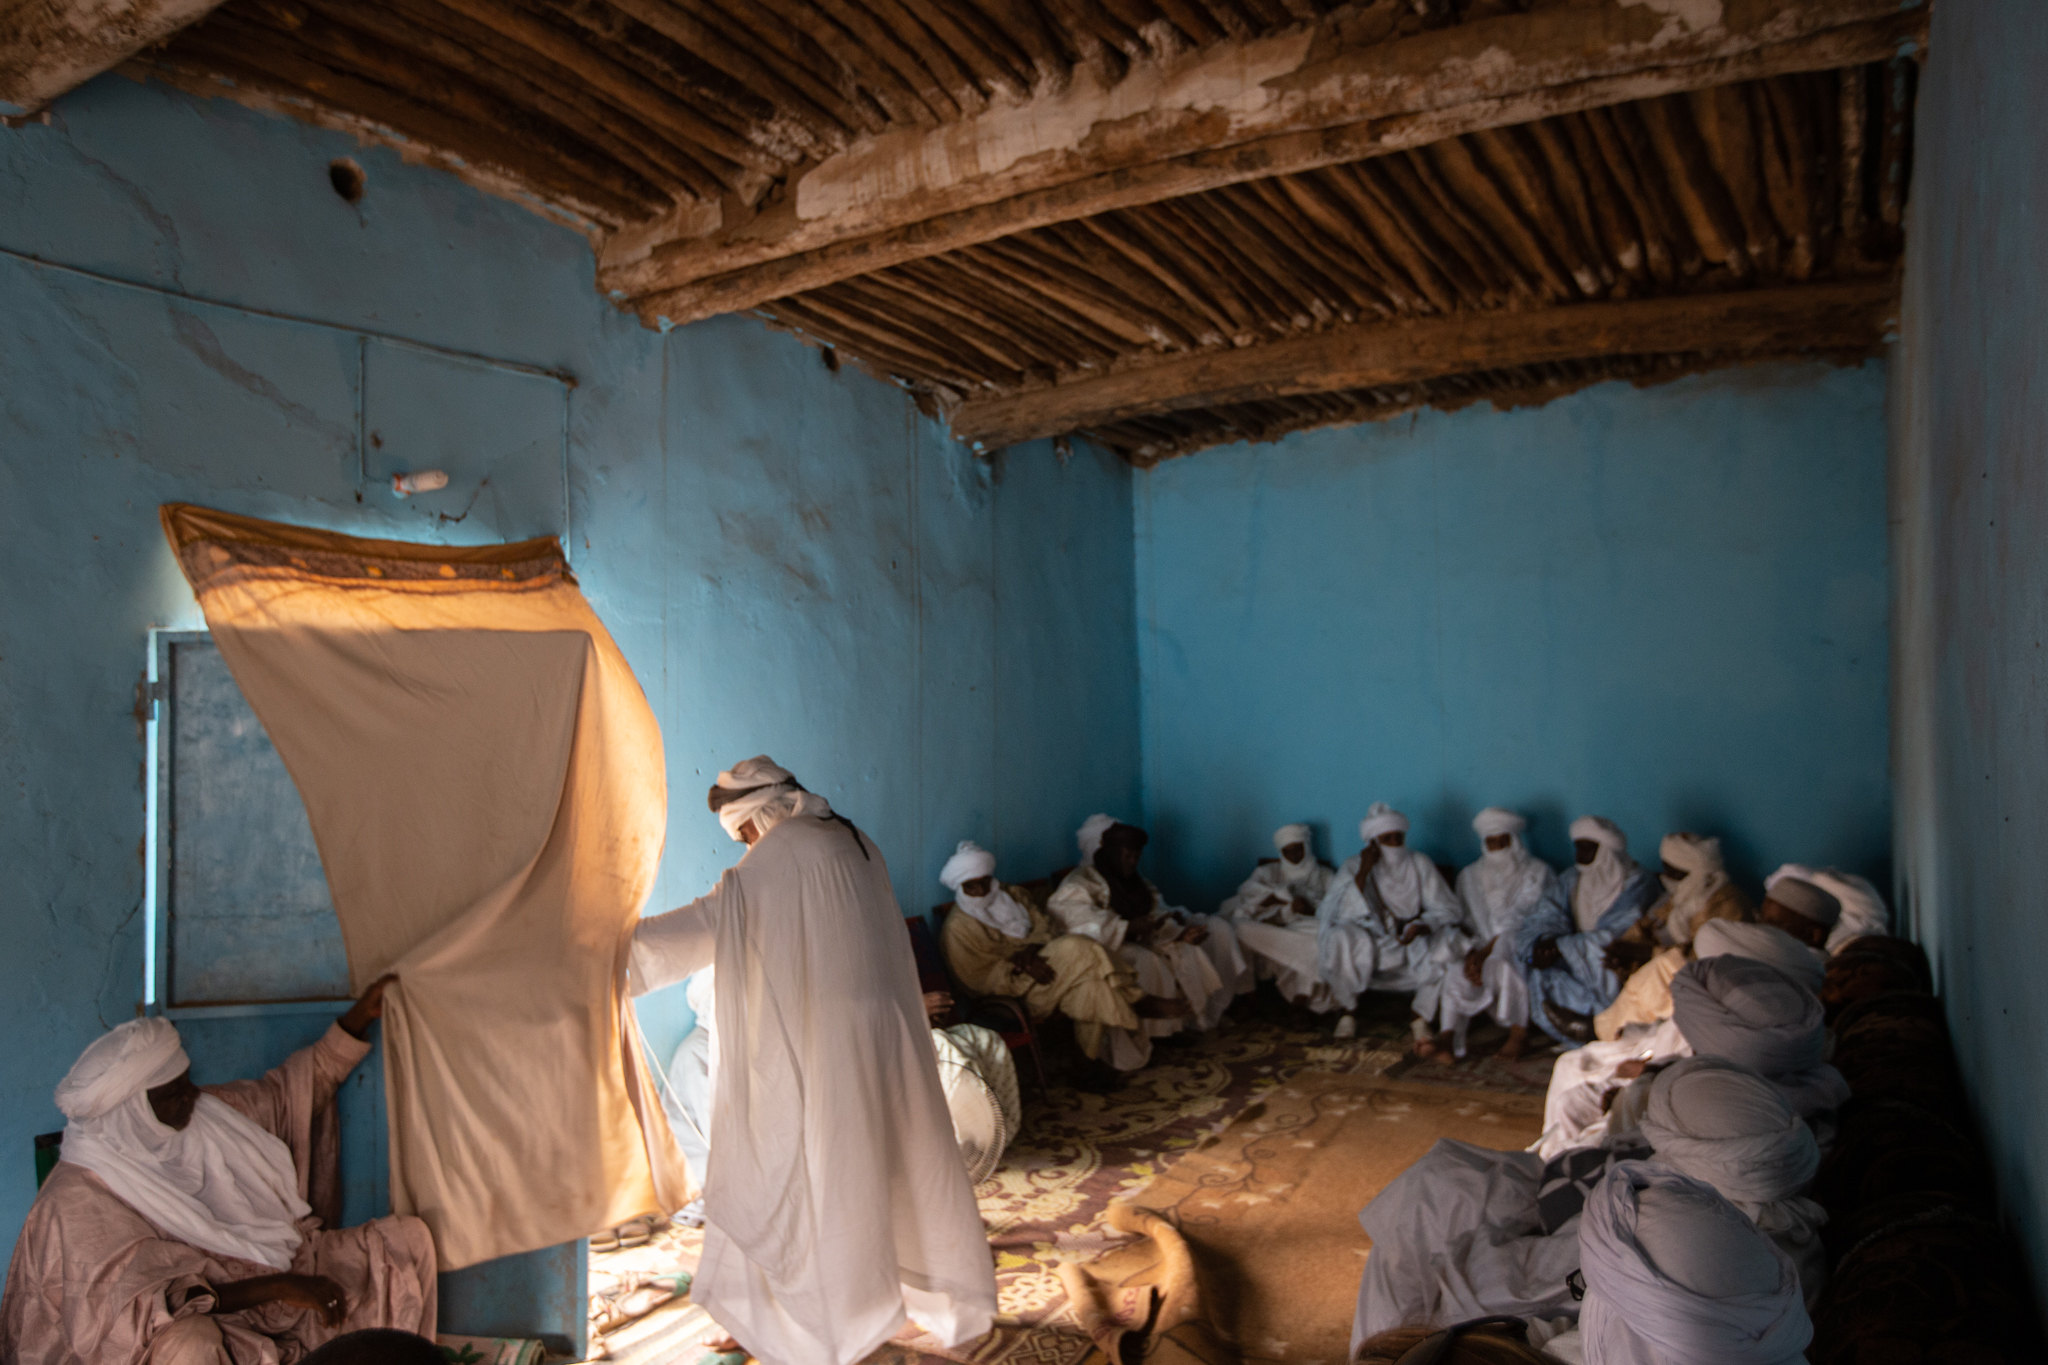 Traditional and religious Tuareg leaders meet to discuss the challenges that affect Niger's nomads.